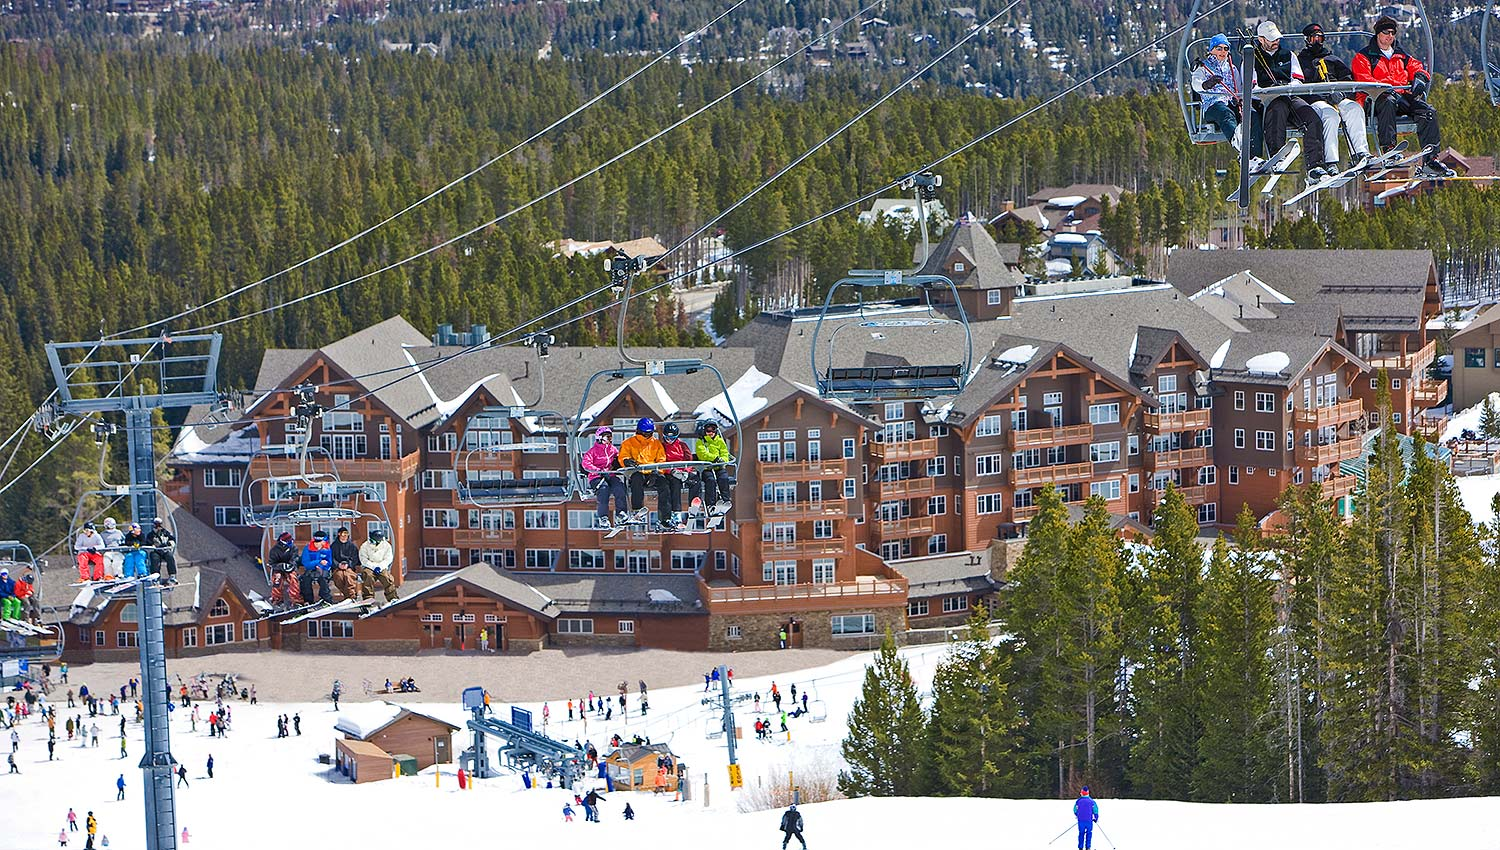 PROJECT BRECKENRIDGE - Redesigning Peak 8 Base at Breckenridge, Colorado - This is really great!